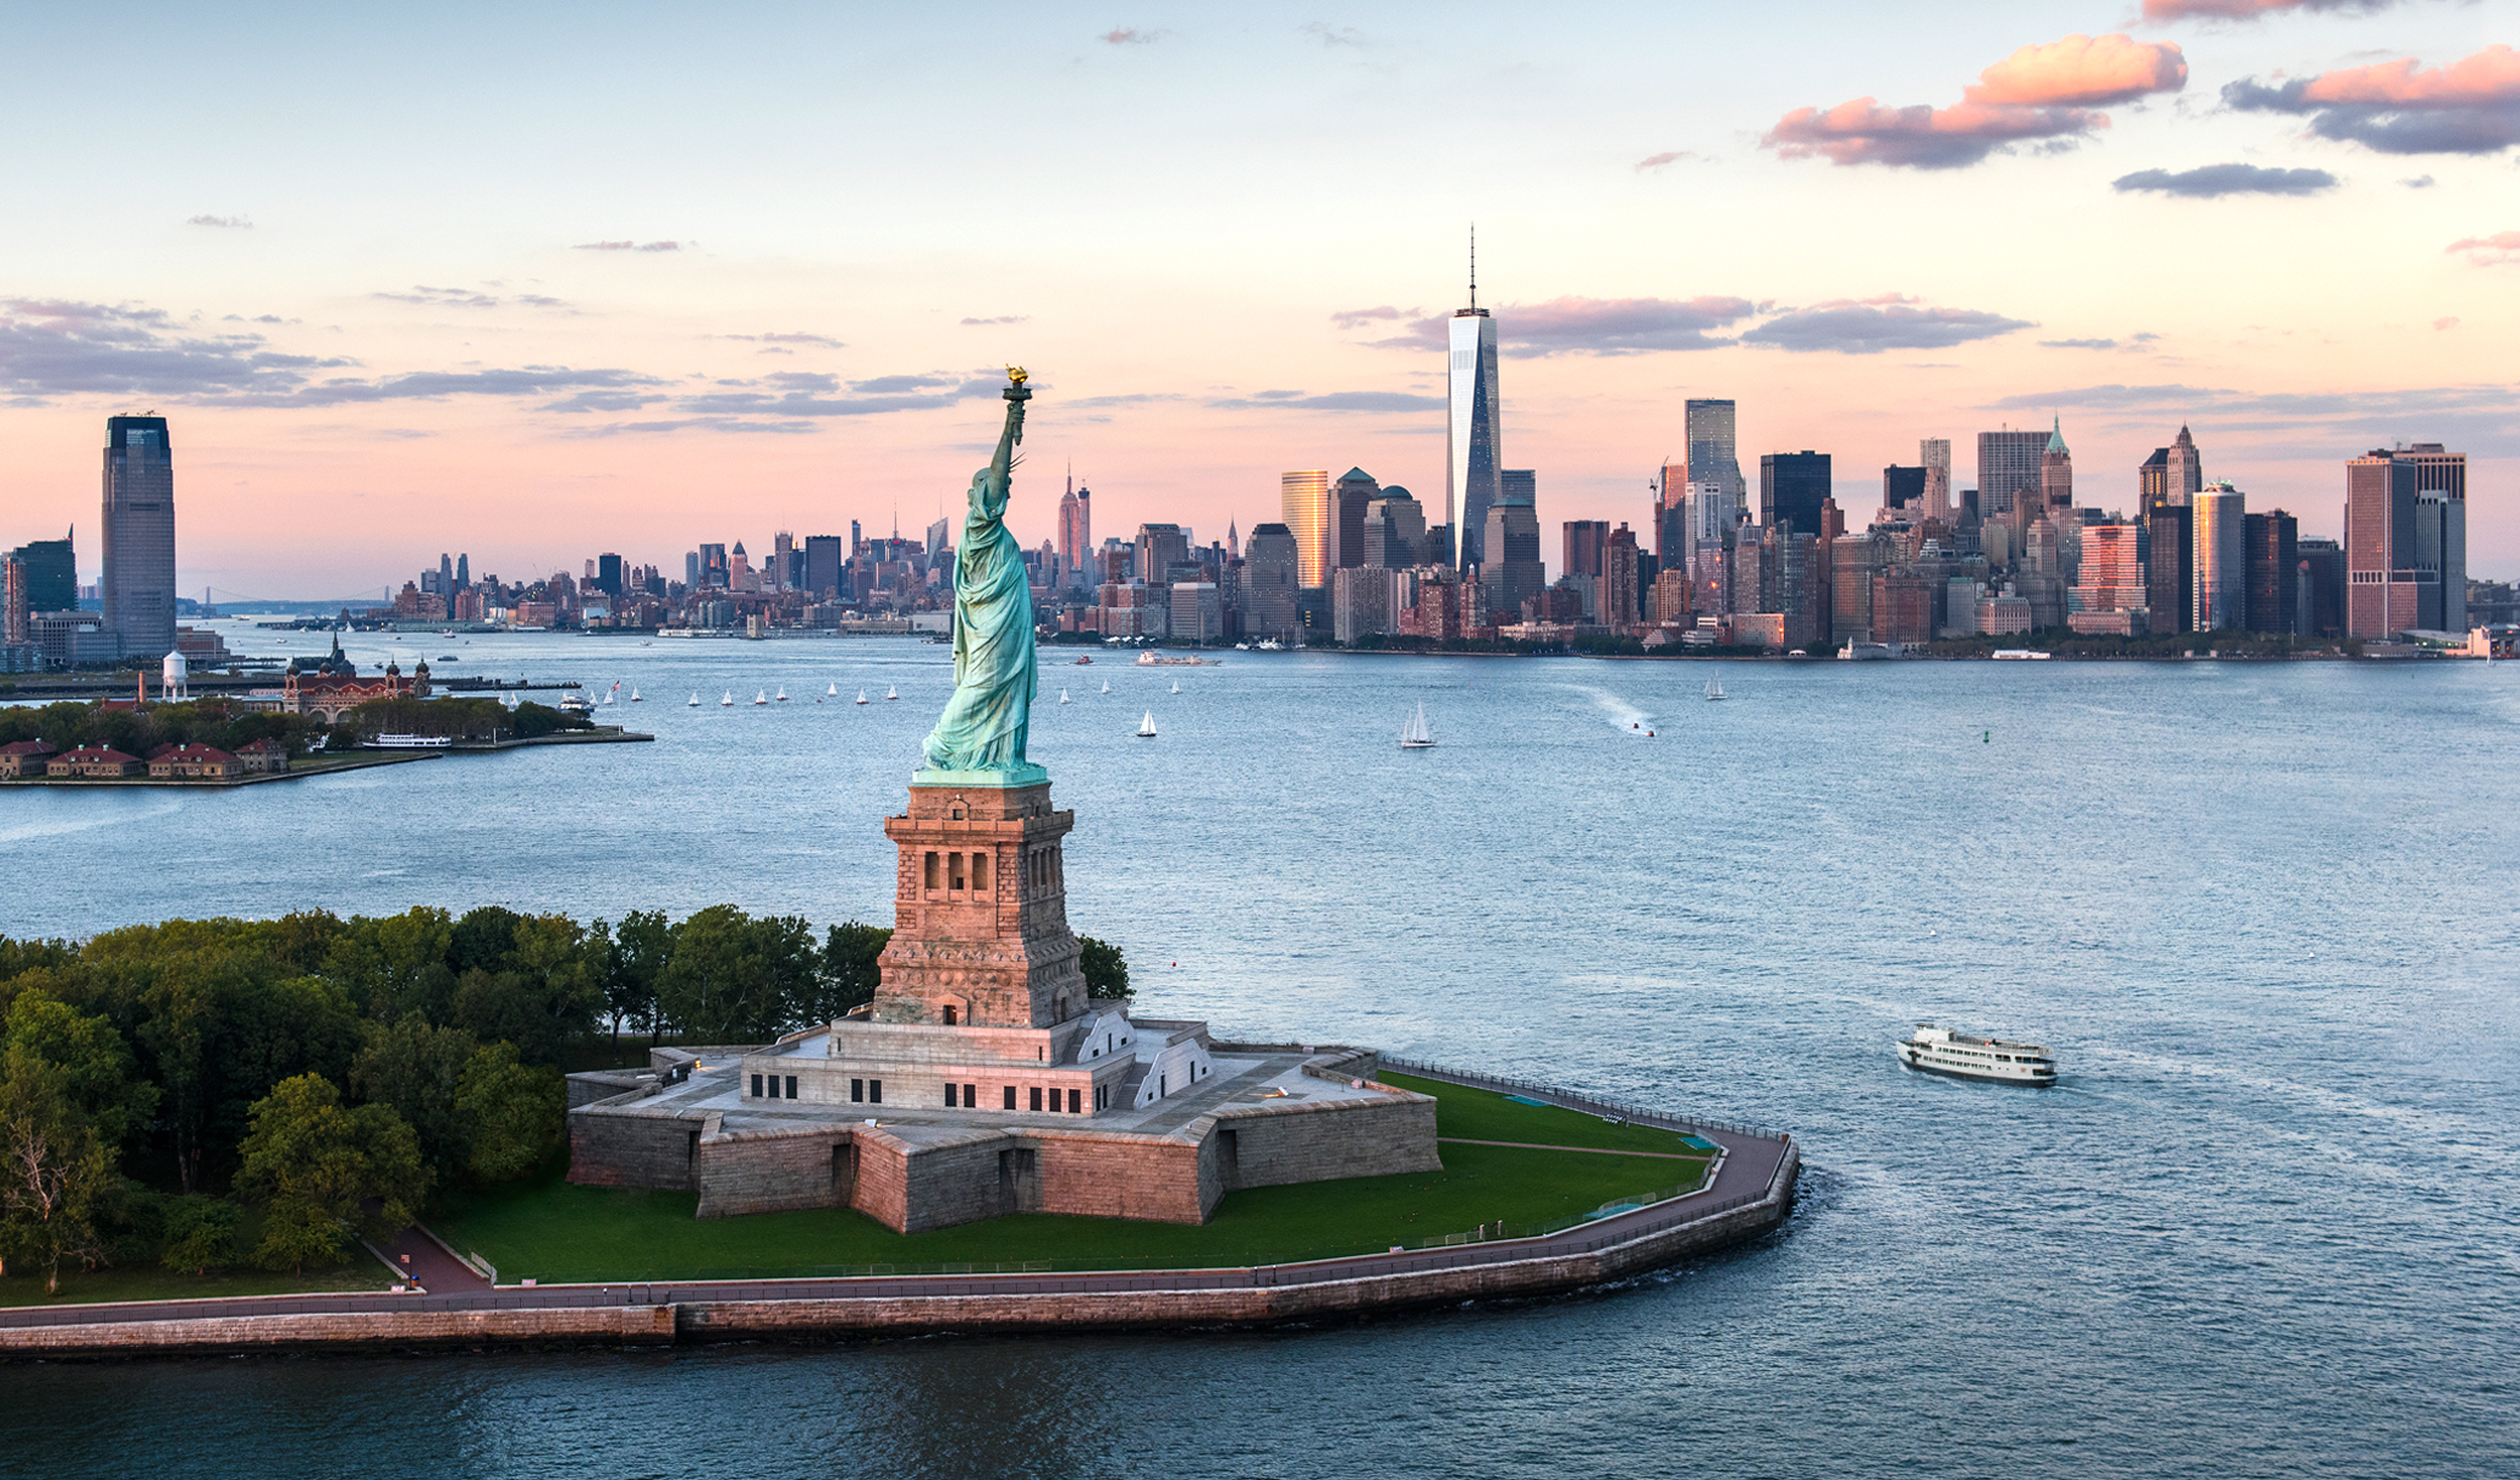 Bus Tours In Nyc New York Ny Small Bus Tours Nyc